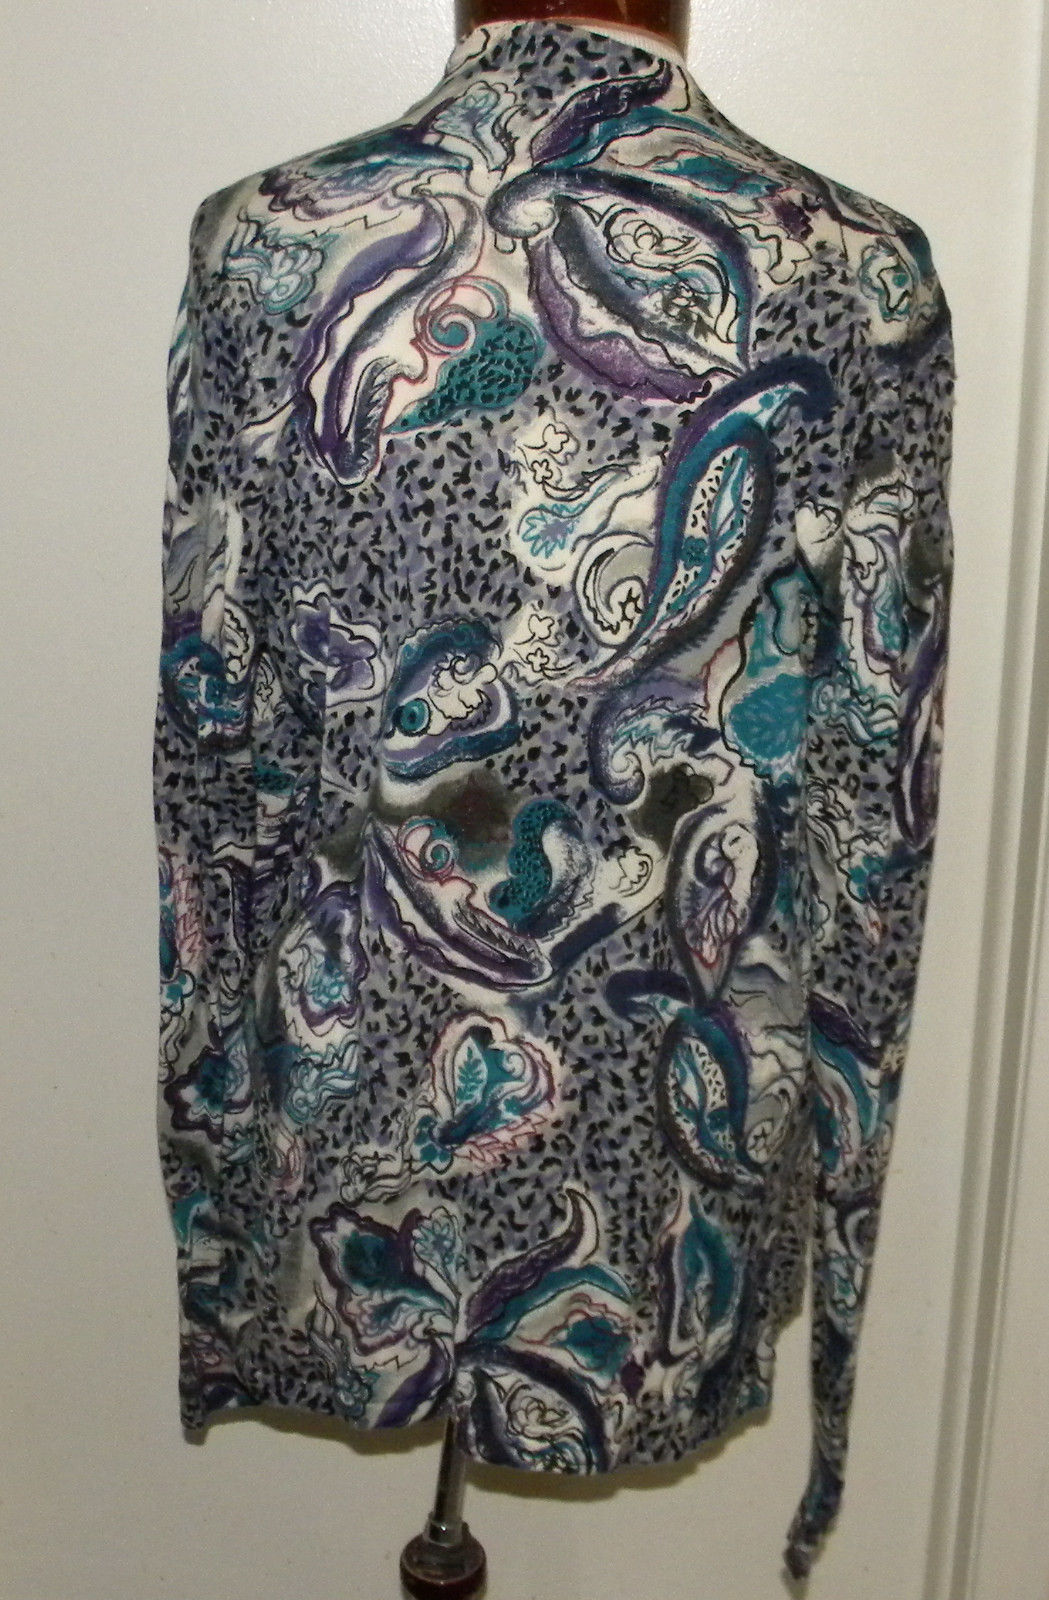 ChARTER CLUB abstract floral print blouse knit top long sleeve M (8-10) fitted